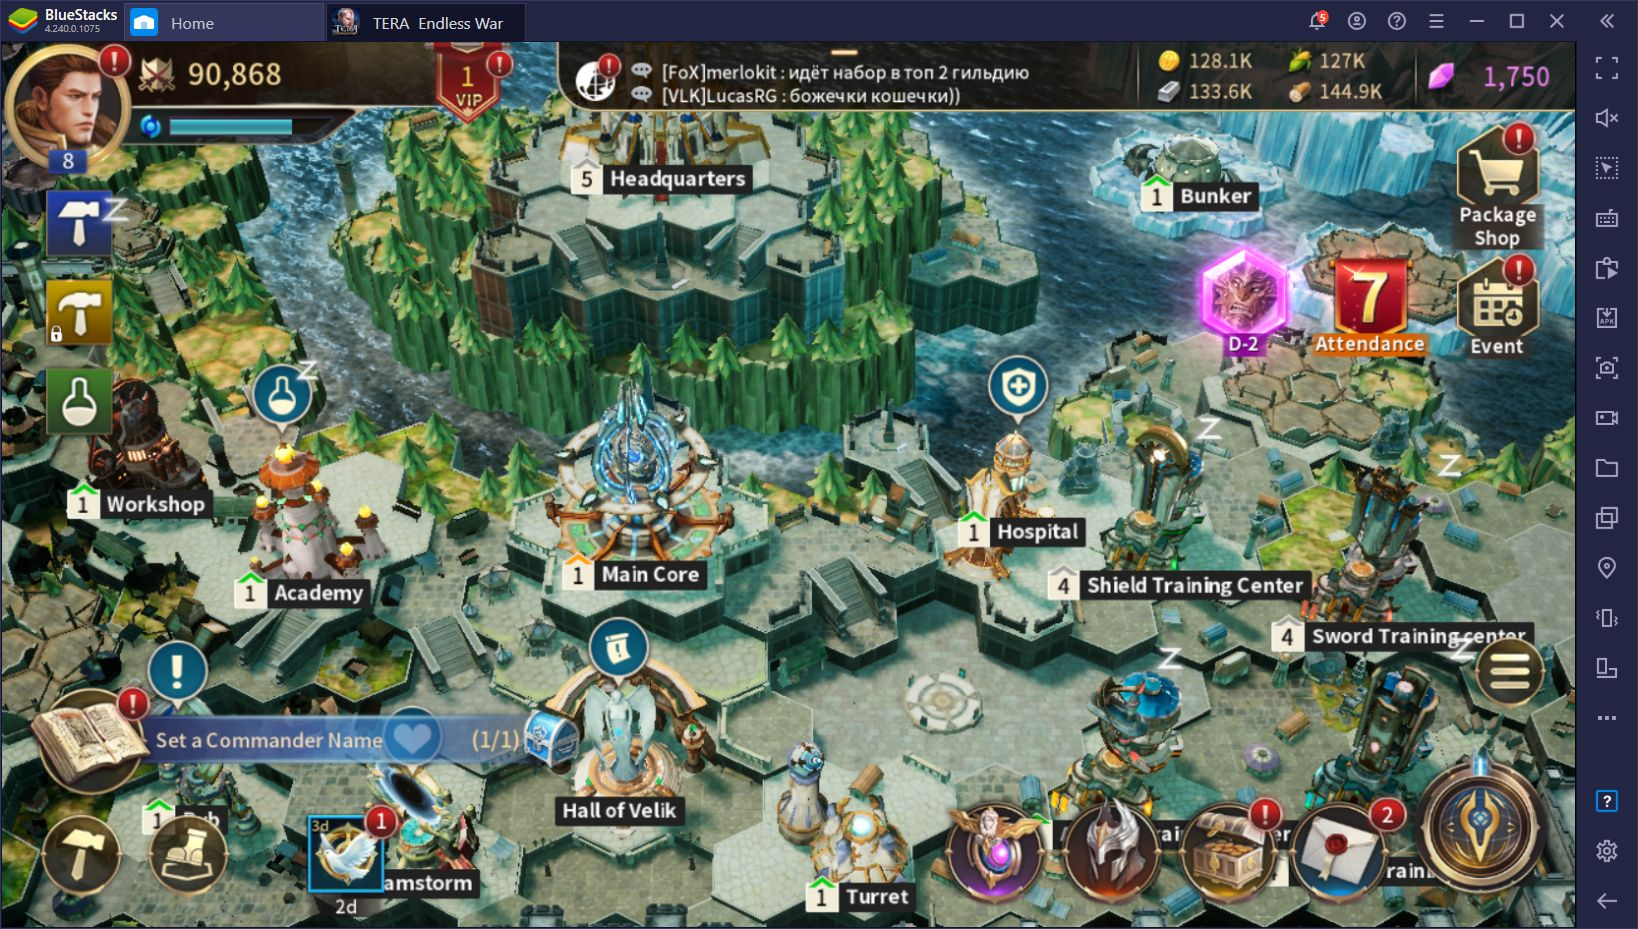 TERA: Endless War – How to Play This Mobile Game on PC With BlueStacks